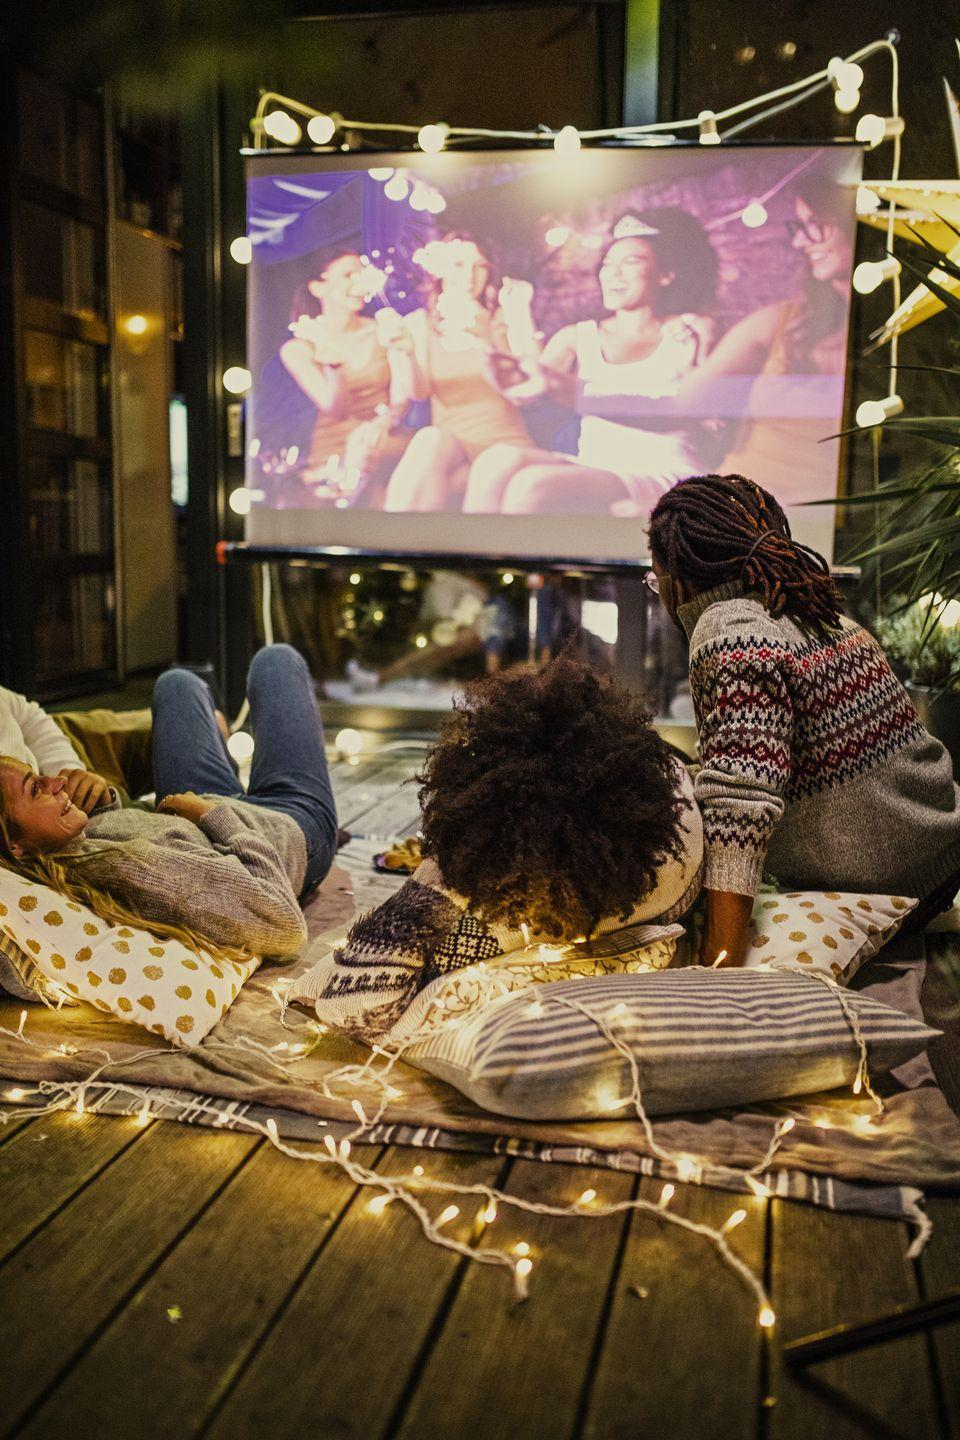 """<p>The best way to unwind on Thanksgiving is with a cozy fall movie. Build a pillow fort, pop some popcorn (or heat up some leftovers), and snuggle in to watch a film. If you want to get a head start on the holidays, watch a <a href=""""https://www.goodhousekeeping.com/holidays/christmas-ideas/g30284494/best-christmas-movies-on-netflix/"""" rel=""""nofollow noopener"""" target=""""_blank"""" data-ylk=""""slk:Christmas movie"""" class=""""link rapid-noclick-resp"""">Christmas movie</a>. </p><p><strong>RELATED: </strong><a href=""""https://www.goodhousekeeping.com/life/entertainment/g28169124/fall-movies-on-netflix/"""" rel=""""nofollow noopener"""" target=""""_blank"""" data-ylk=""""slk:20 Best Fall Movies on Netflix That Are Essential to the Season"""" class=""""link rapid-noclick-resp"""">20 Best Fall Movies on Netflix That Are Essential to the Season</a></p>"""